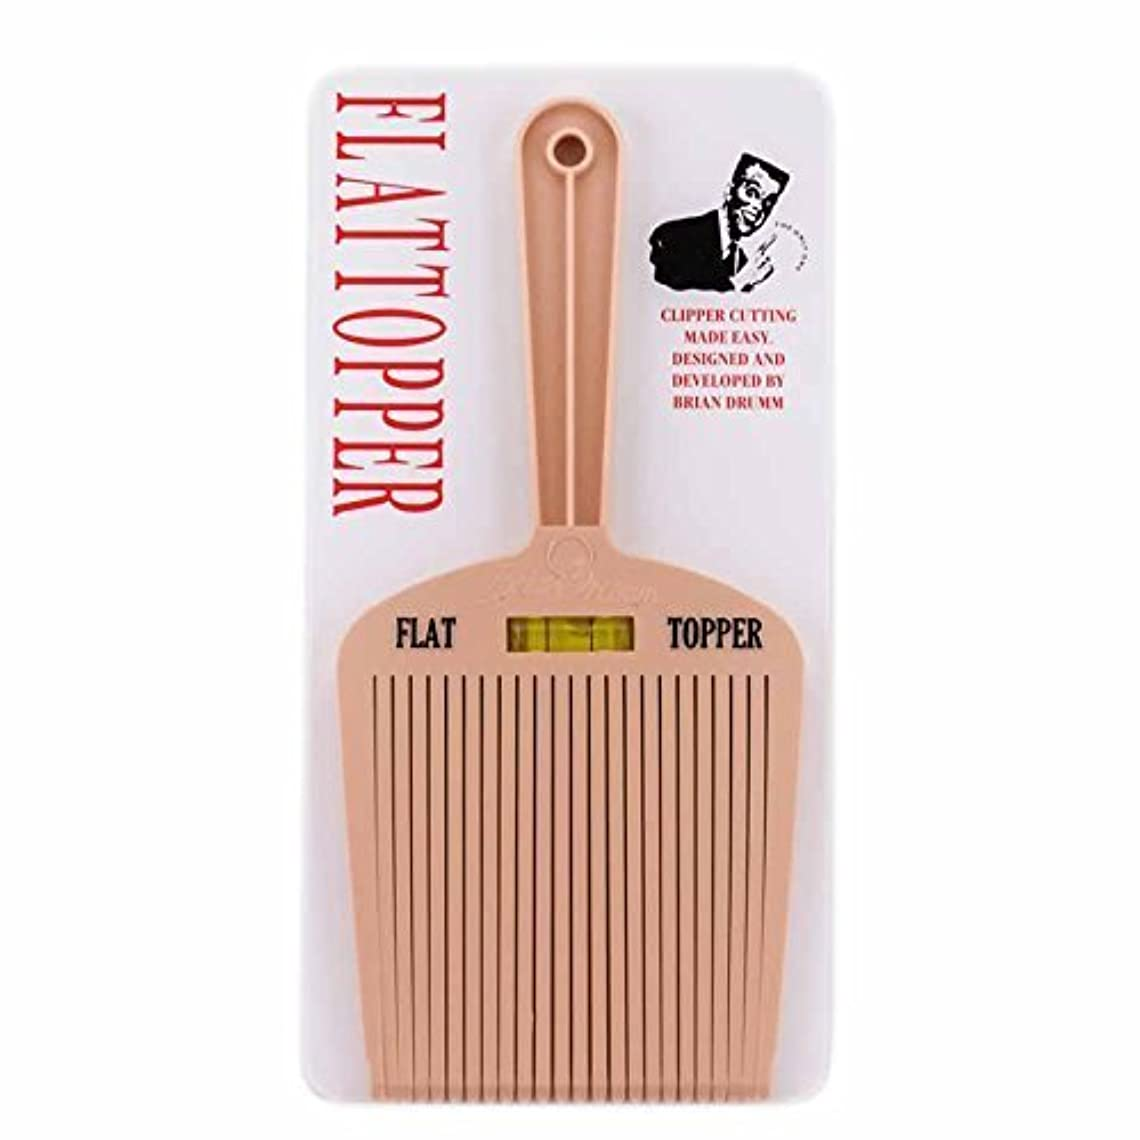 Brian Drumm Flattopper I Machine Comb, White [並行輸入品]